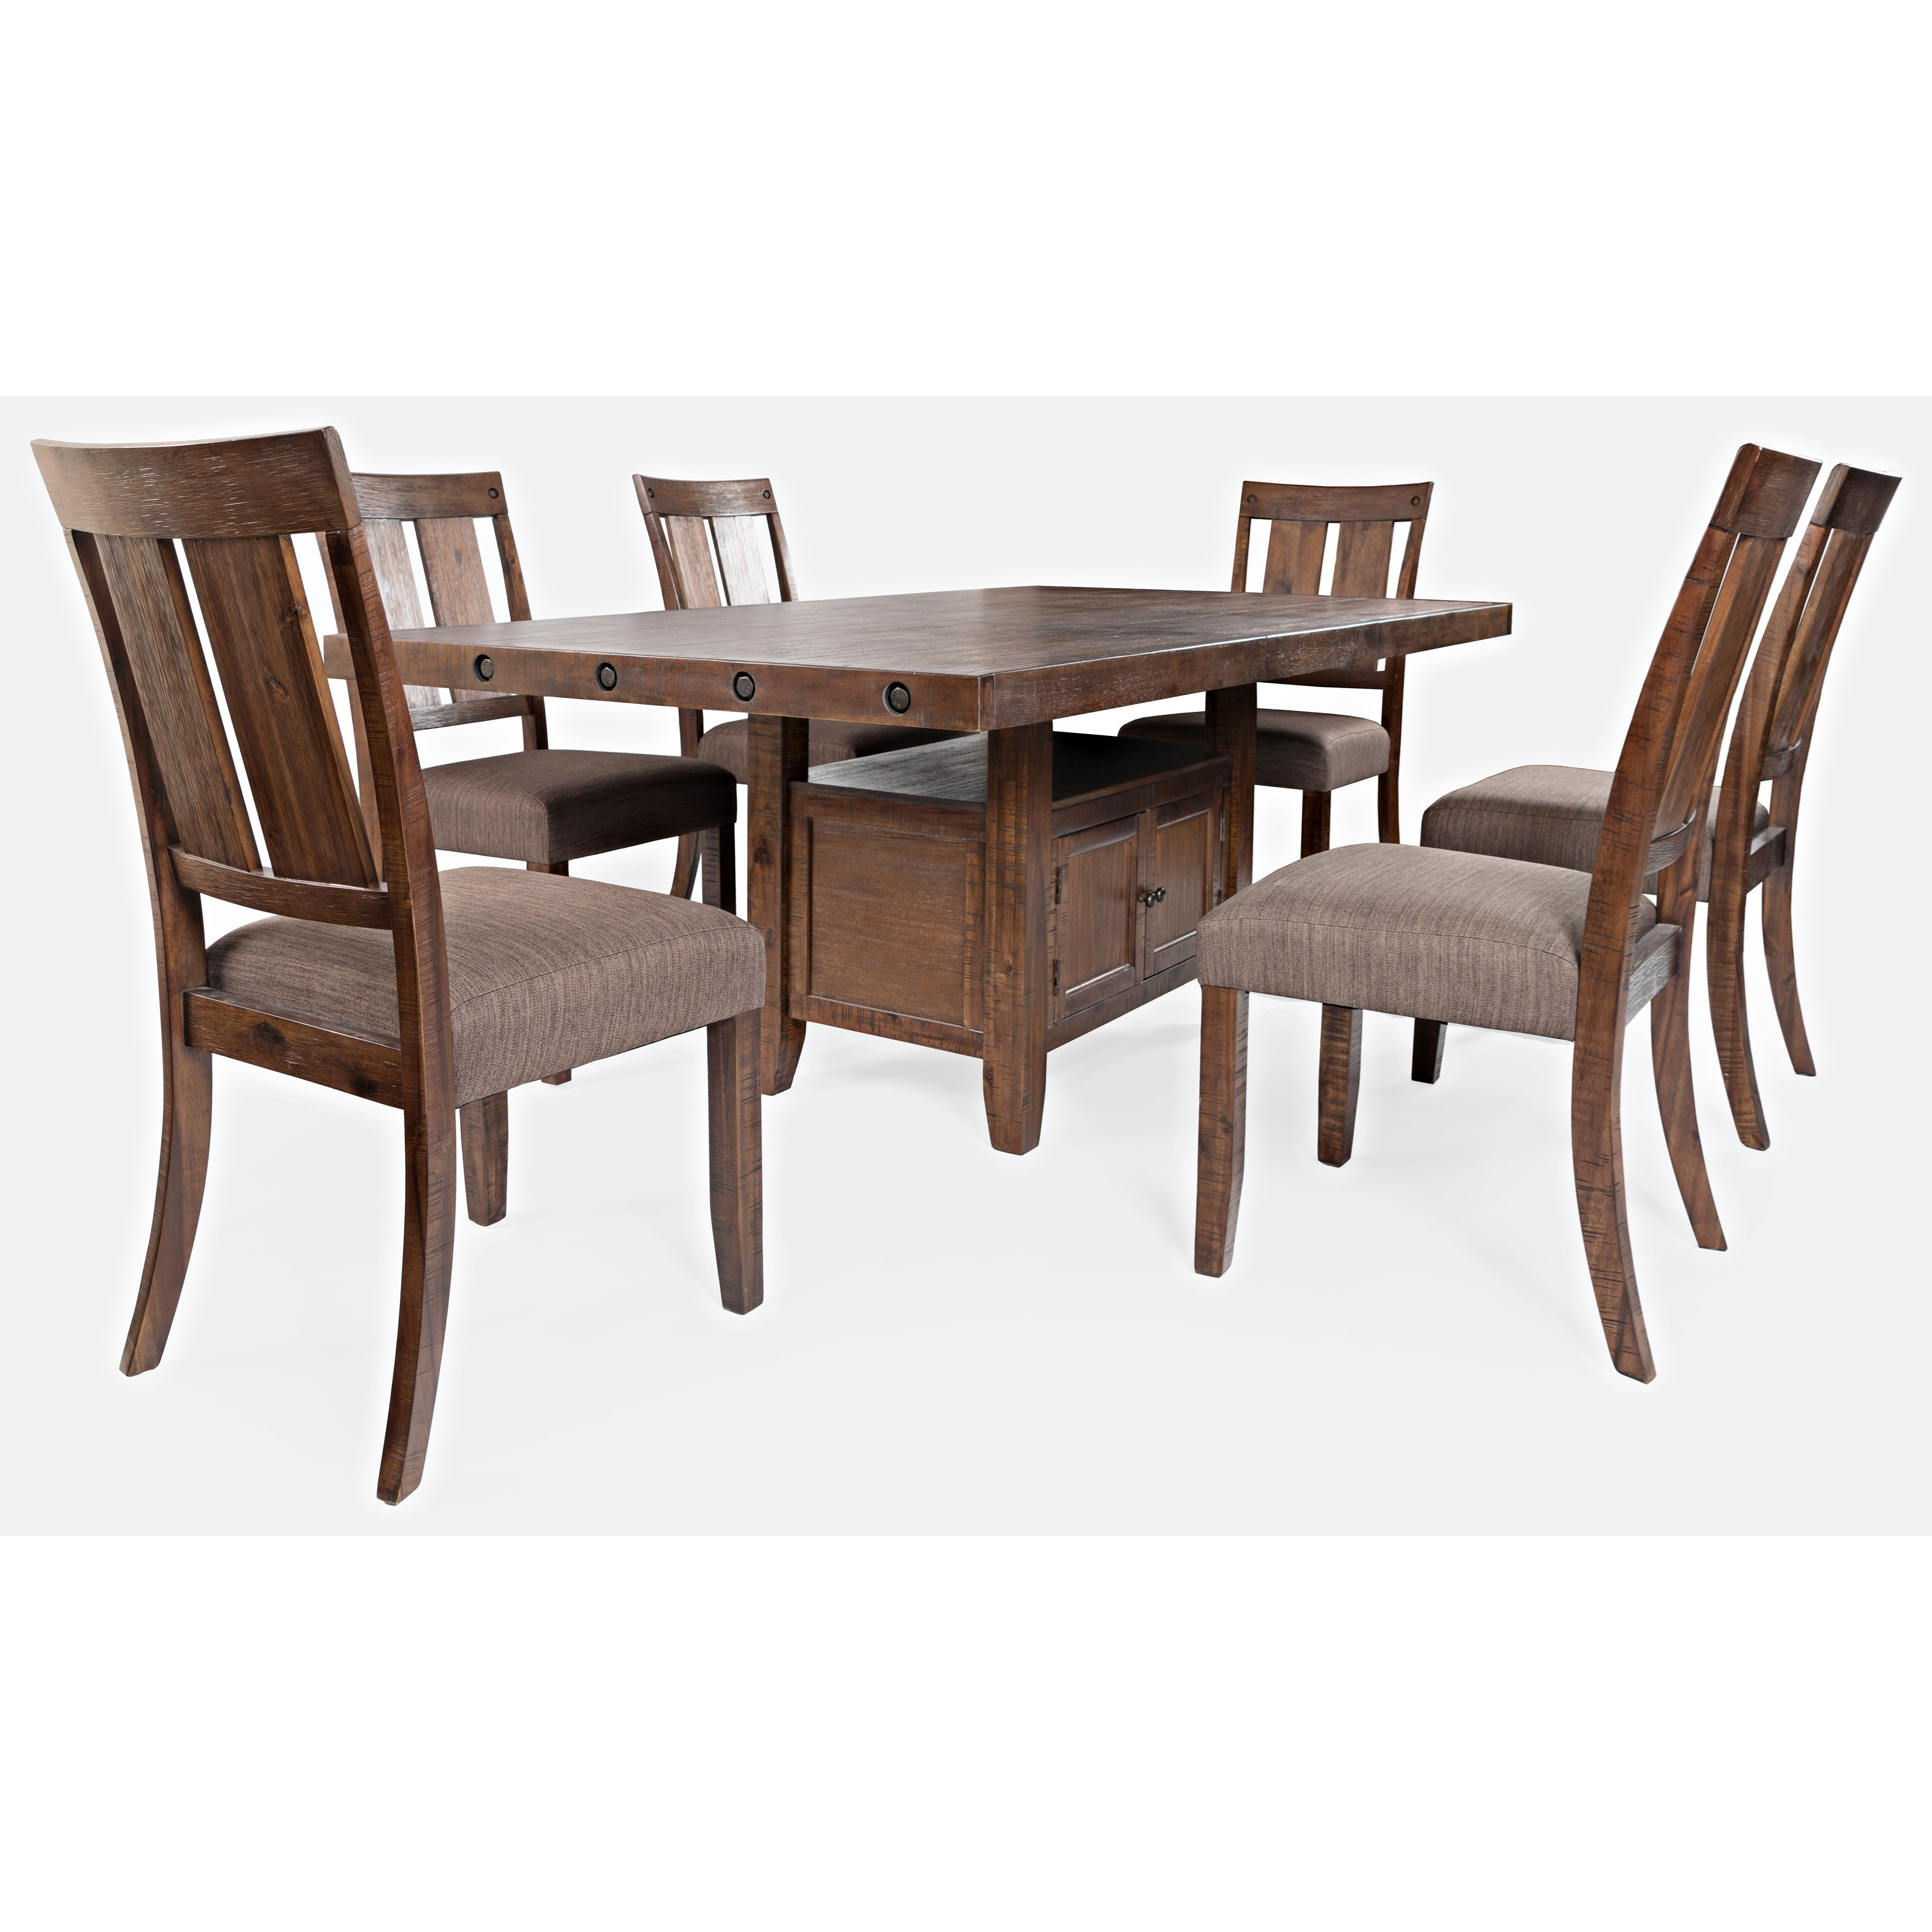 Mission Viejo 7-Piece Table and Chair Set by Jofran at Jofran